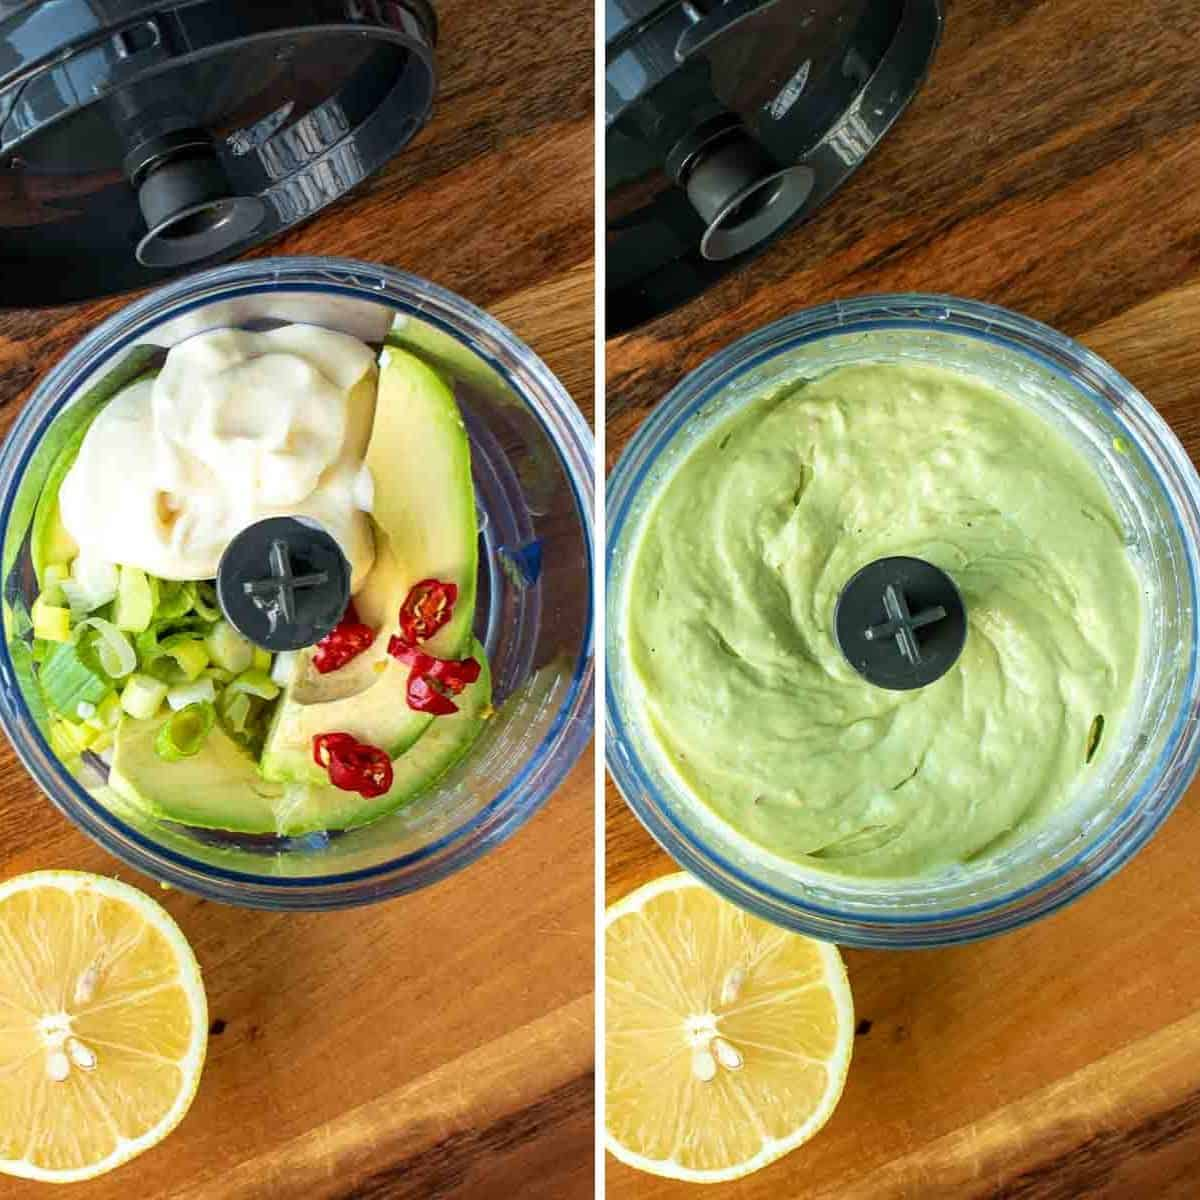 two images - first image opened mini food processor filled with avocado, chilli, spring onion and avocado with half lemon on the side; second image opened mini food processor filled with avocado dip and half lemon on the side.